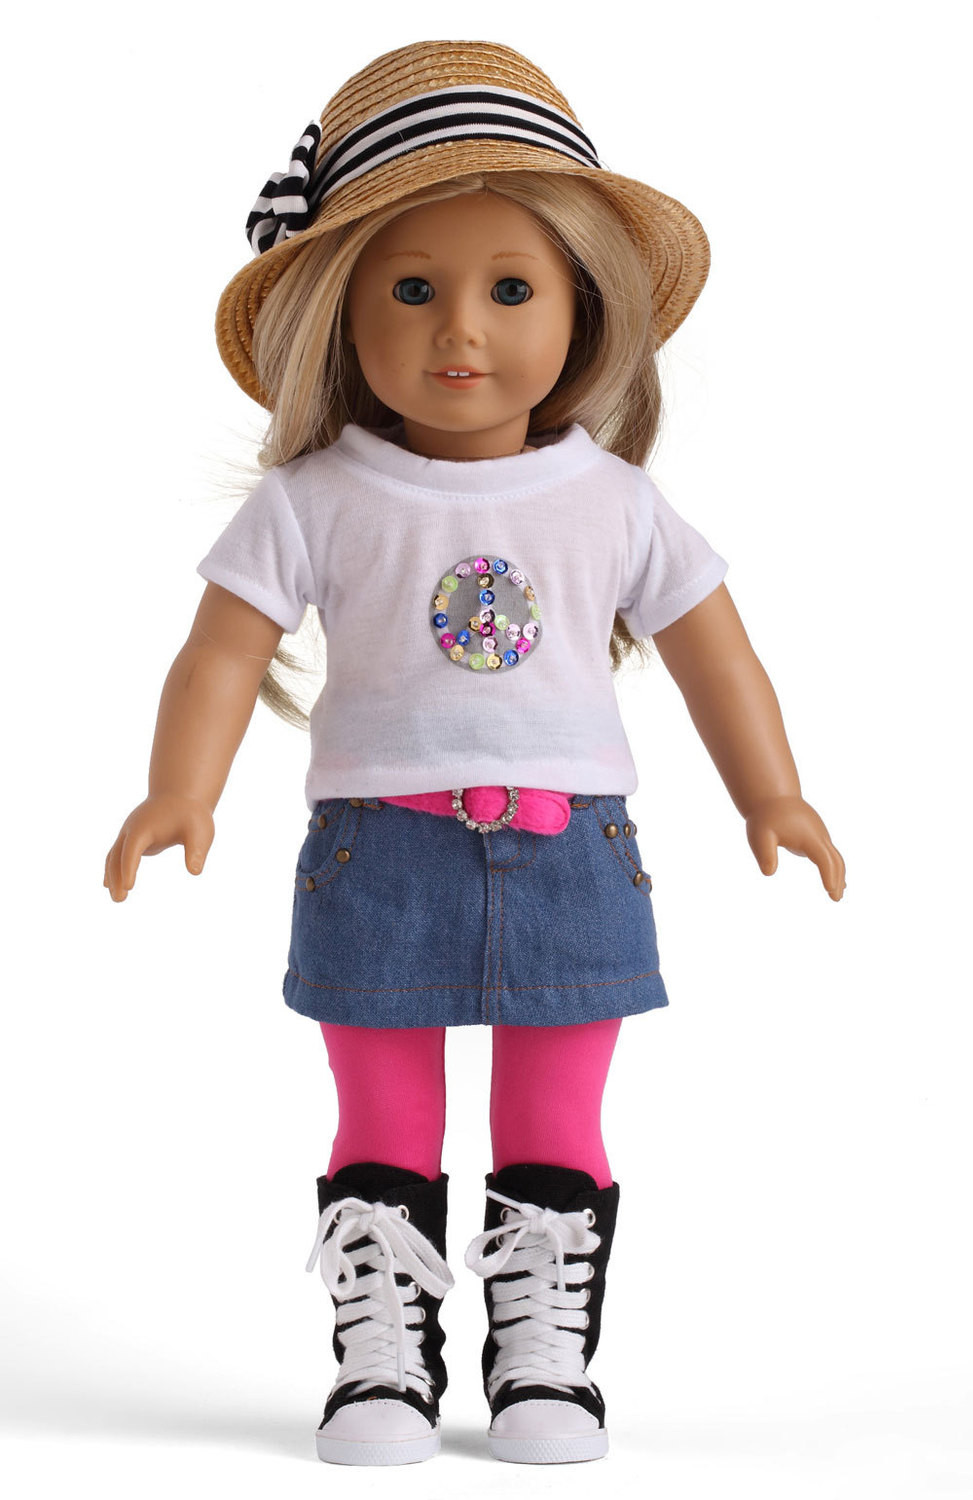 Unique American Girl Doll Clothes Of White Shirt Jeans Skirt American Girl Doll Skirts Of Incredible 50 Ideas American Girl Doll Skirts